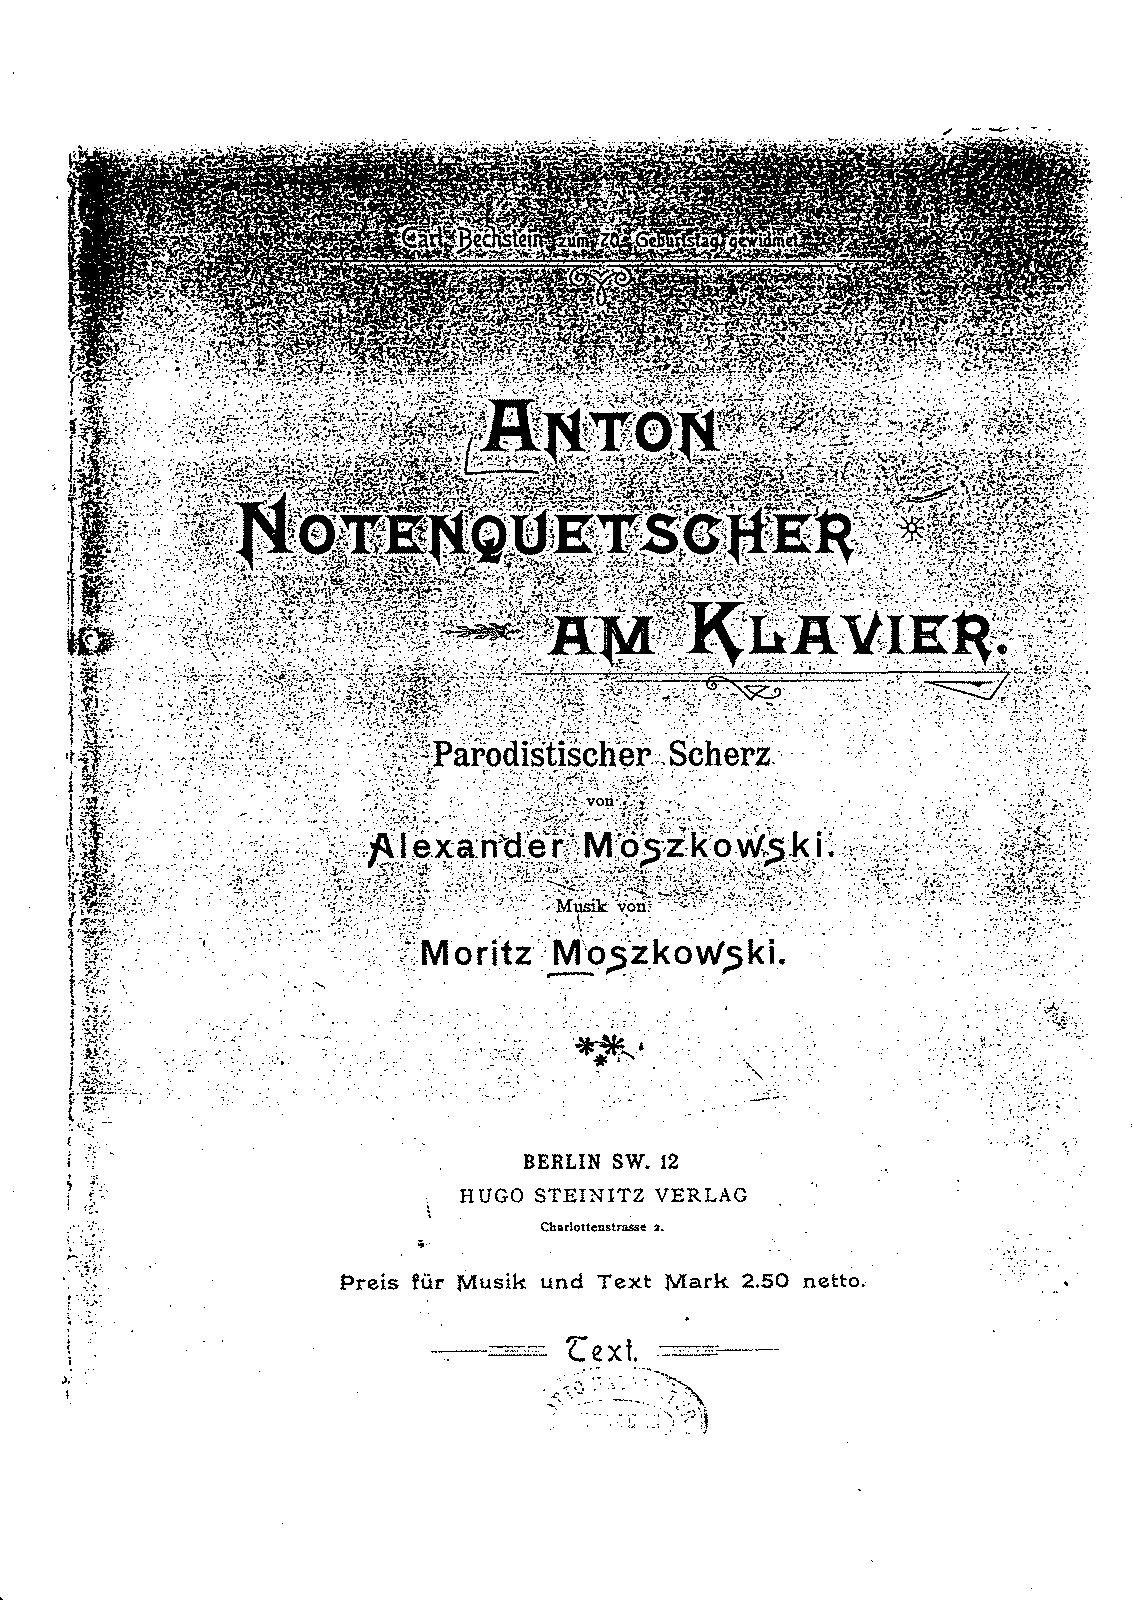 Moszkowski - Op.Misc - Theme and Variations in the Styles of Different Composers.pdf